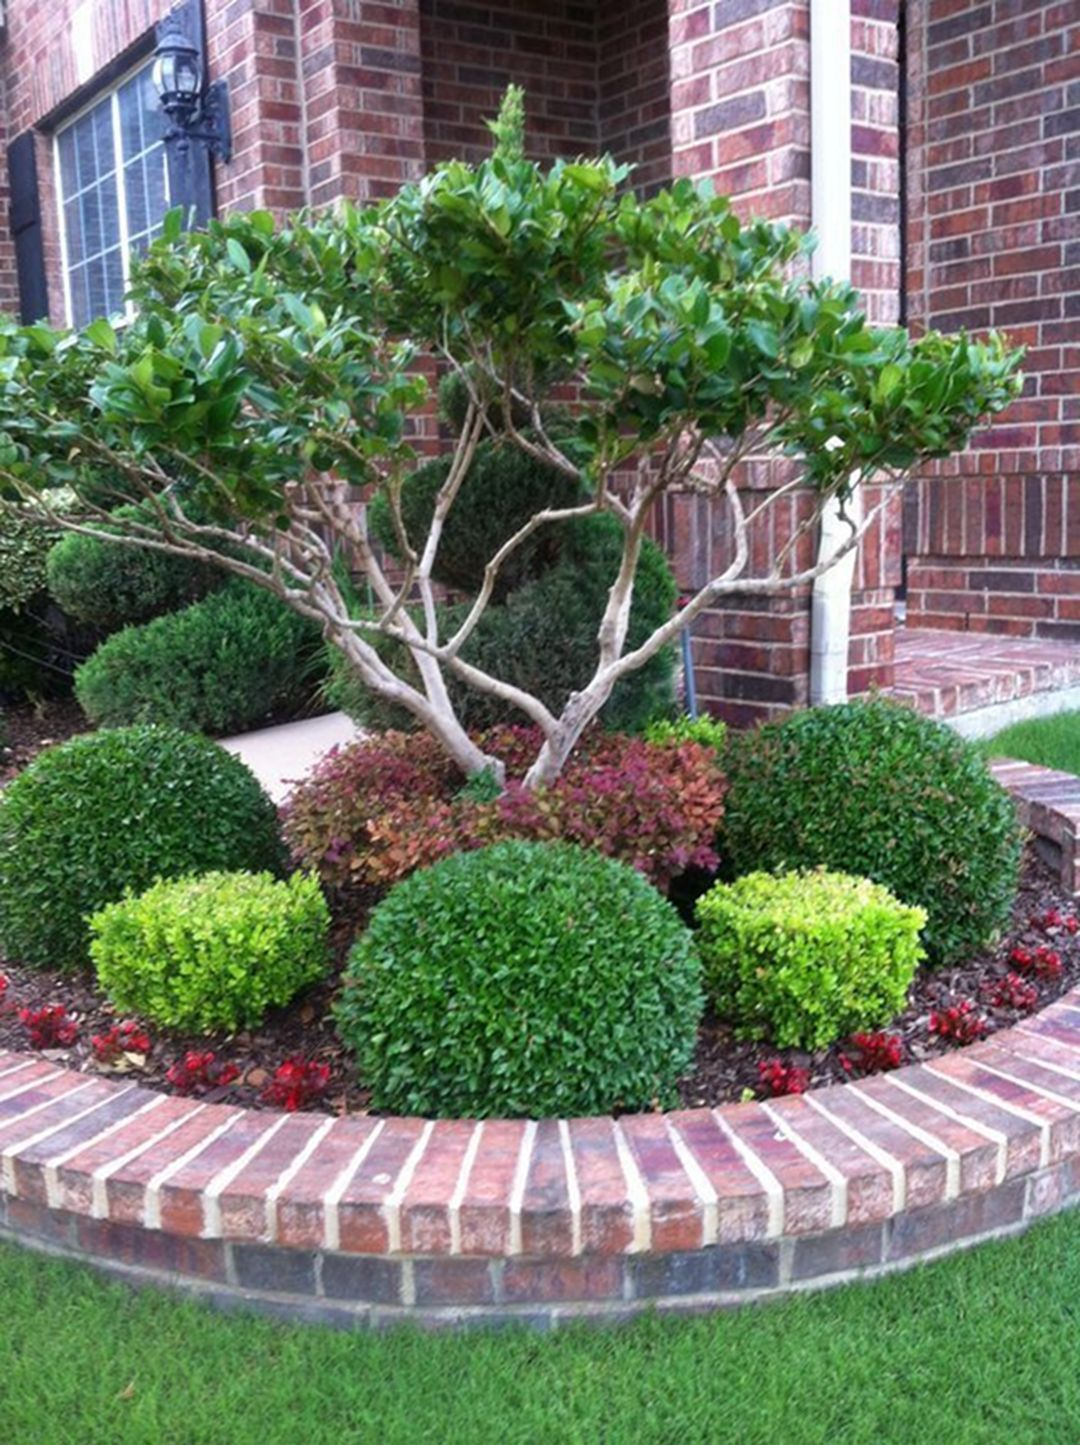 15 amazing front yard landscaping ideas to make your home on awesome backyard garden landscaping ideas that looks amazing id=94890